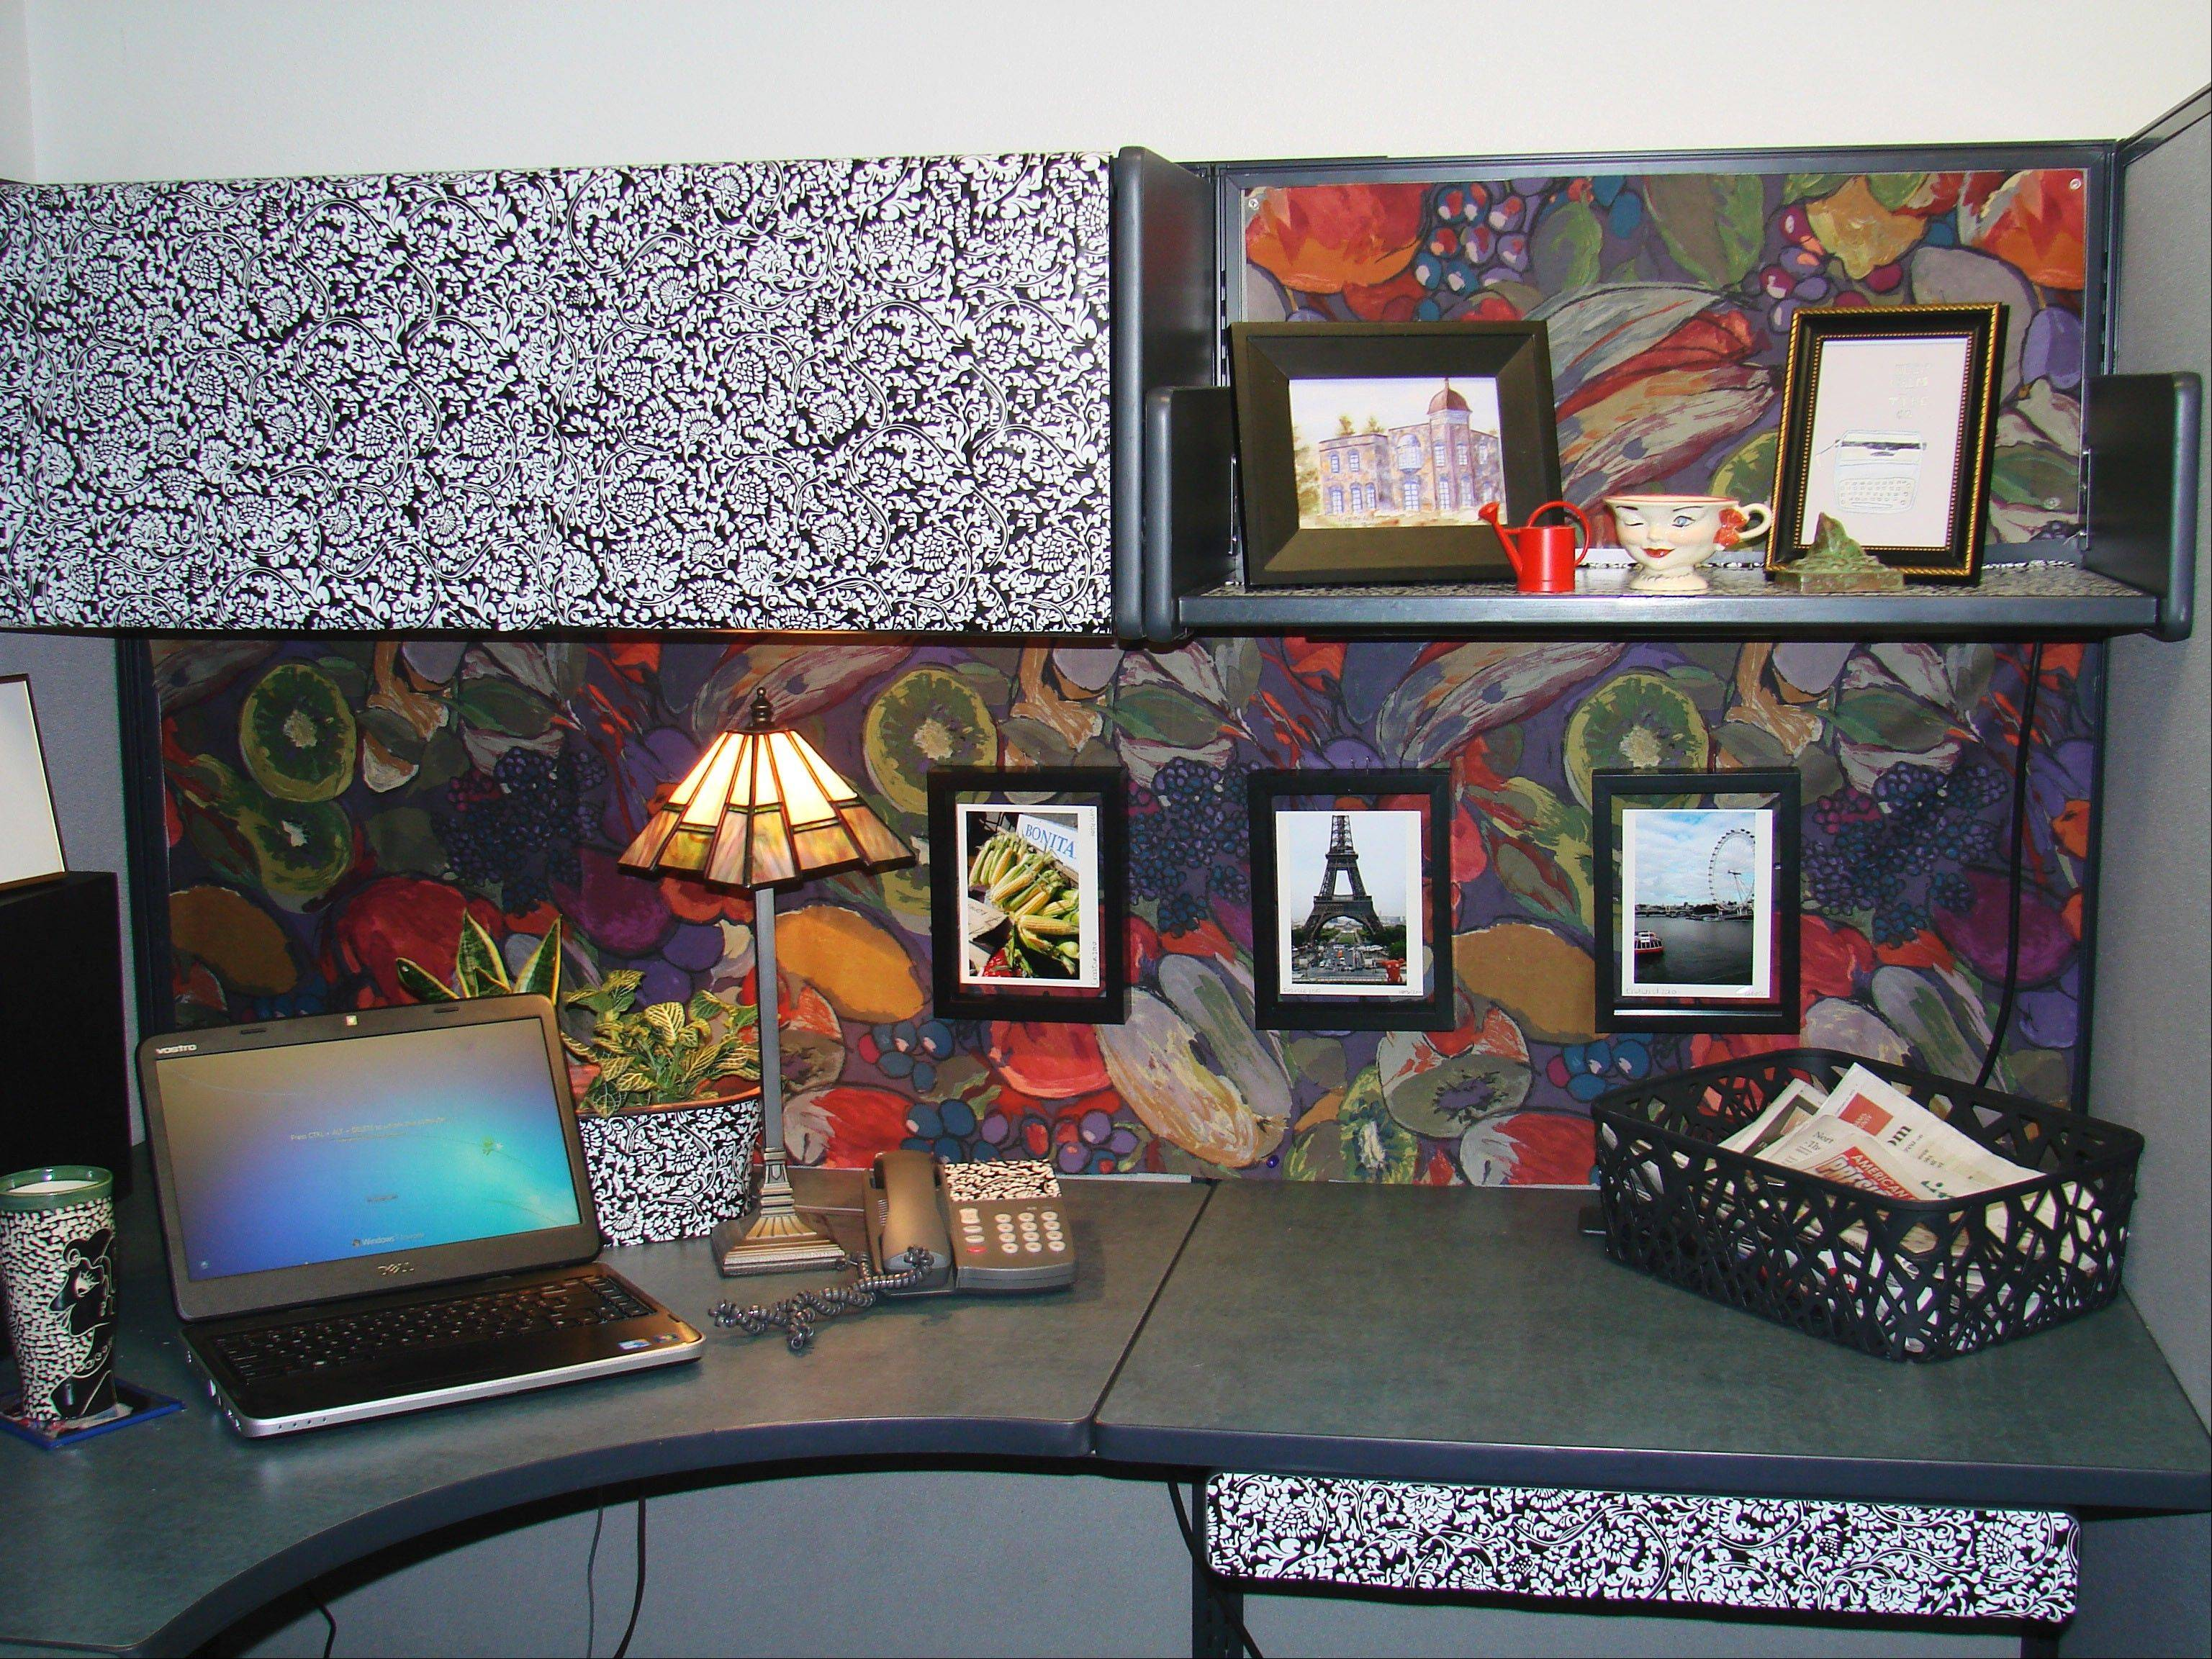 Following the expert advice of several interior designers, this cubicle at a Thornton, Colo., business was styled using a bold fabric on the cubicle wall and black-and-white contact paper on an upper cabinet and various accessories.